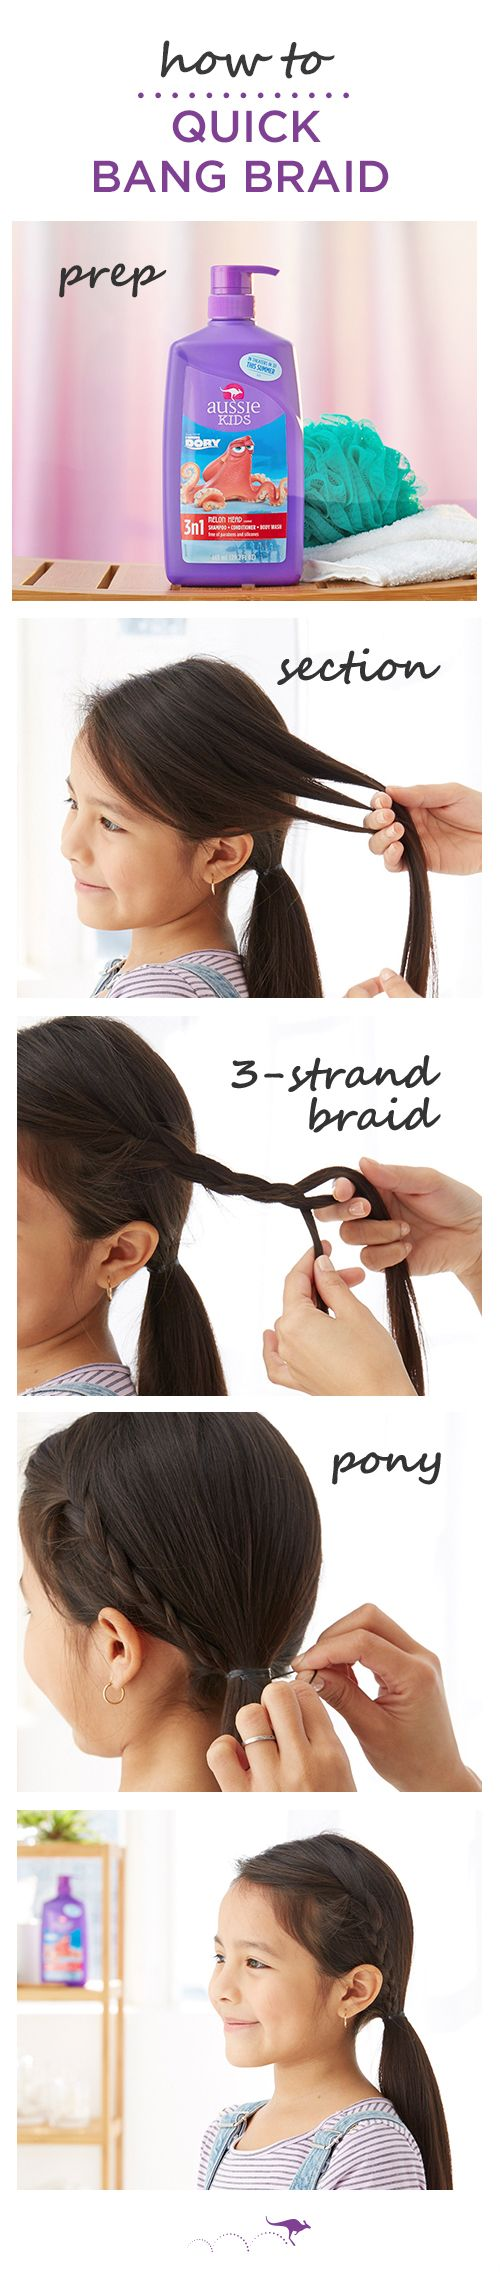 How To: Quick Bang Braid  |  Master this neat braid in minutes (and still have time to enjoy your coffee hot)  |  1. Separate the front of section of hair. Pro Tip: Use the ear as a guide, anything in front is fair game. You can tie the rest into a pony  •  2. Divide section into three strands and French braid (outside, over)  •  3. Tie braid and remaining hair back into a low pony and go. For smoother strands before you style, use Aussie Kids Melon Head 3N1 shampoo, conditioner and body…